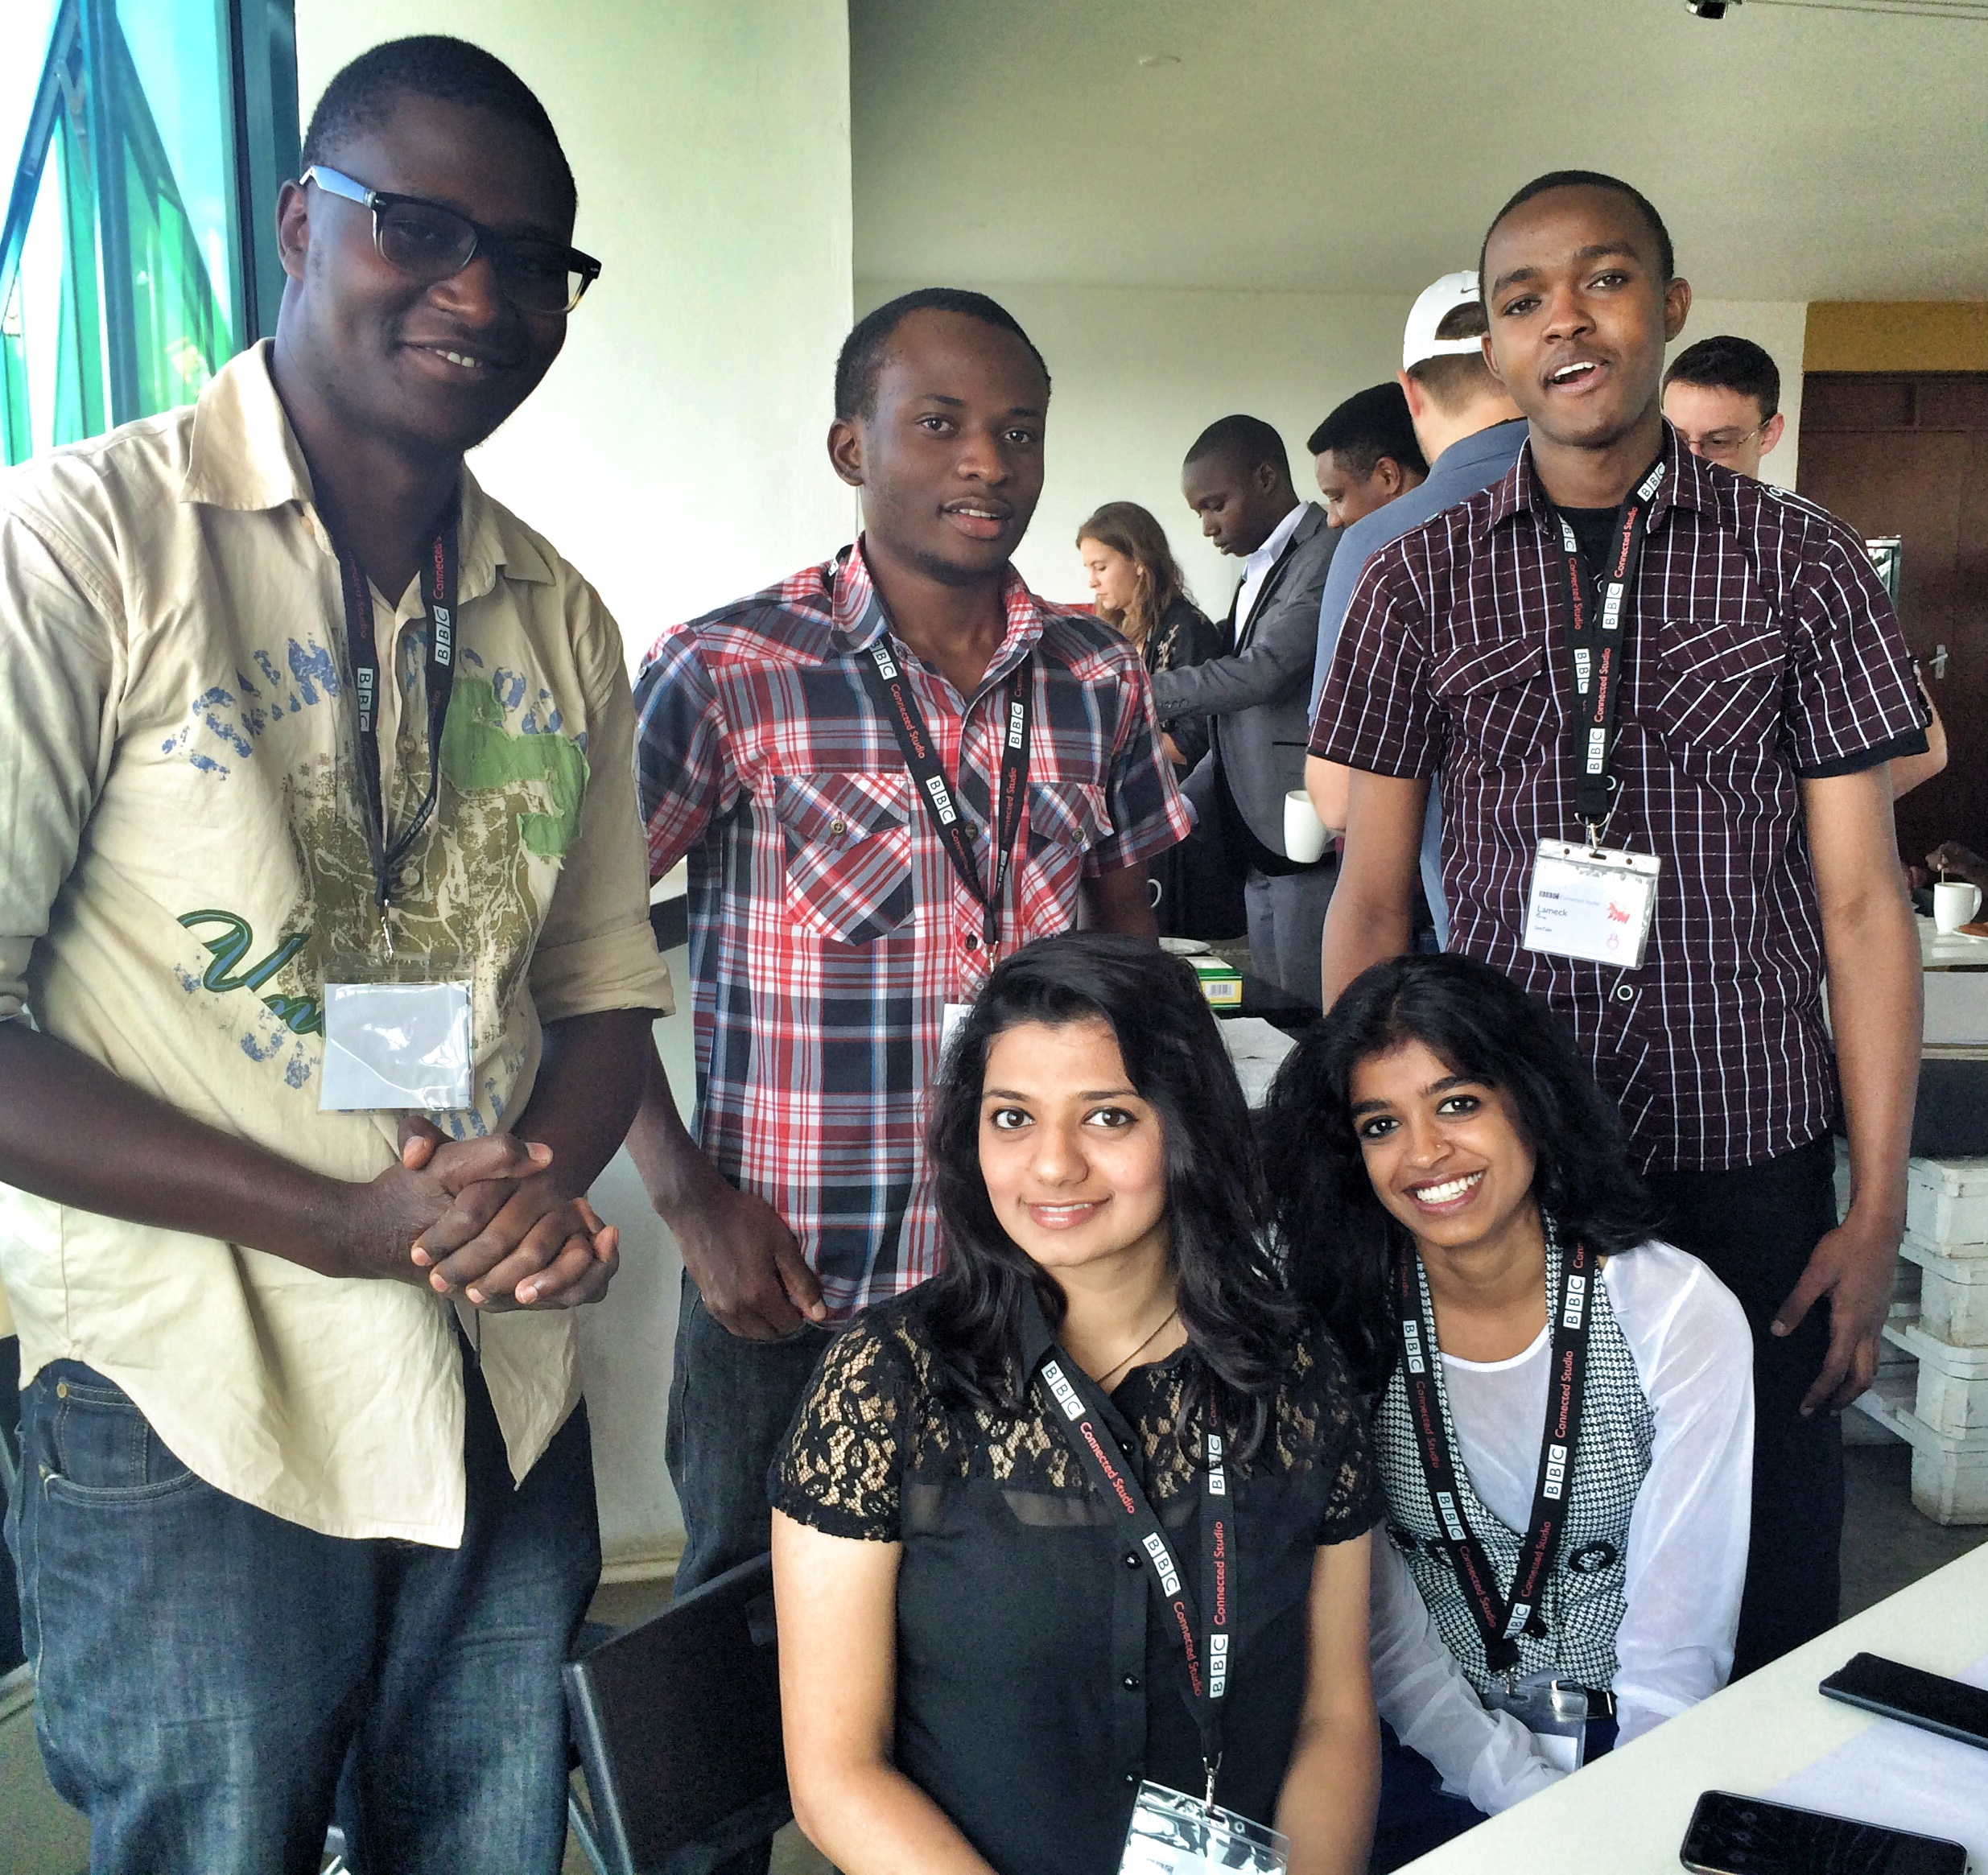 Team SIMTABI at Nairobi #newsHACK